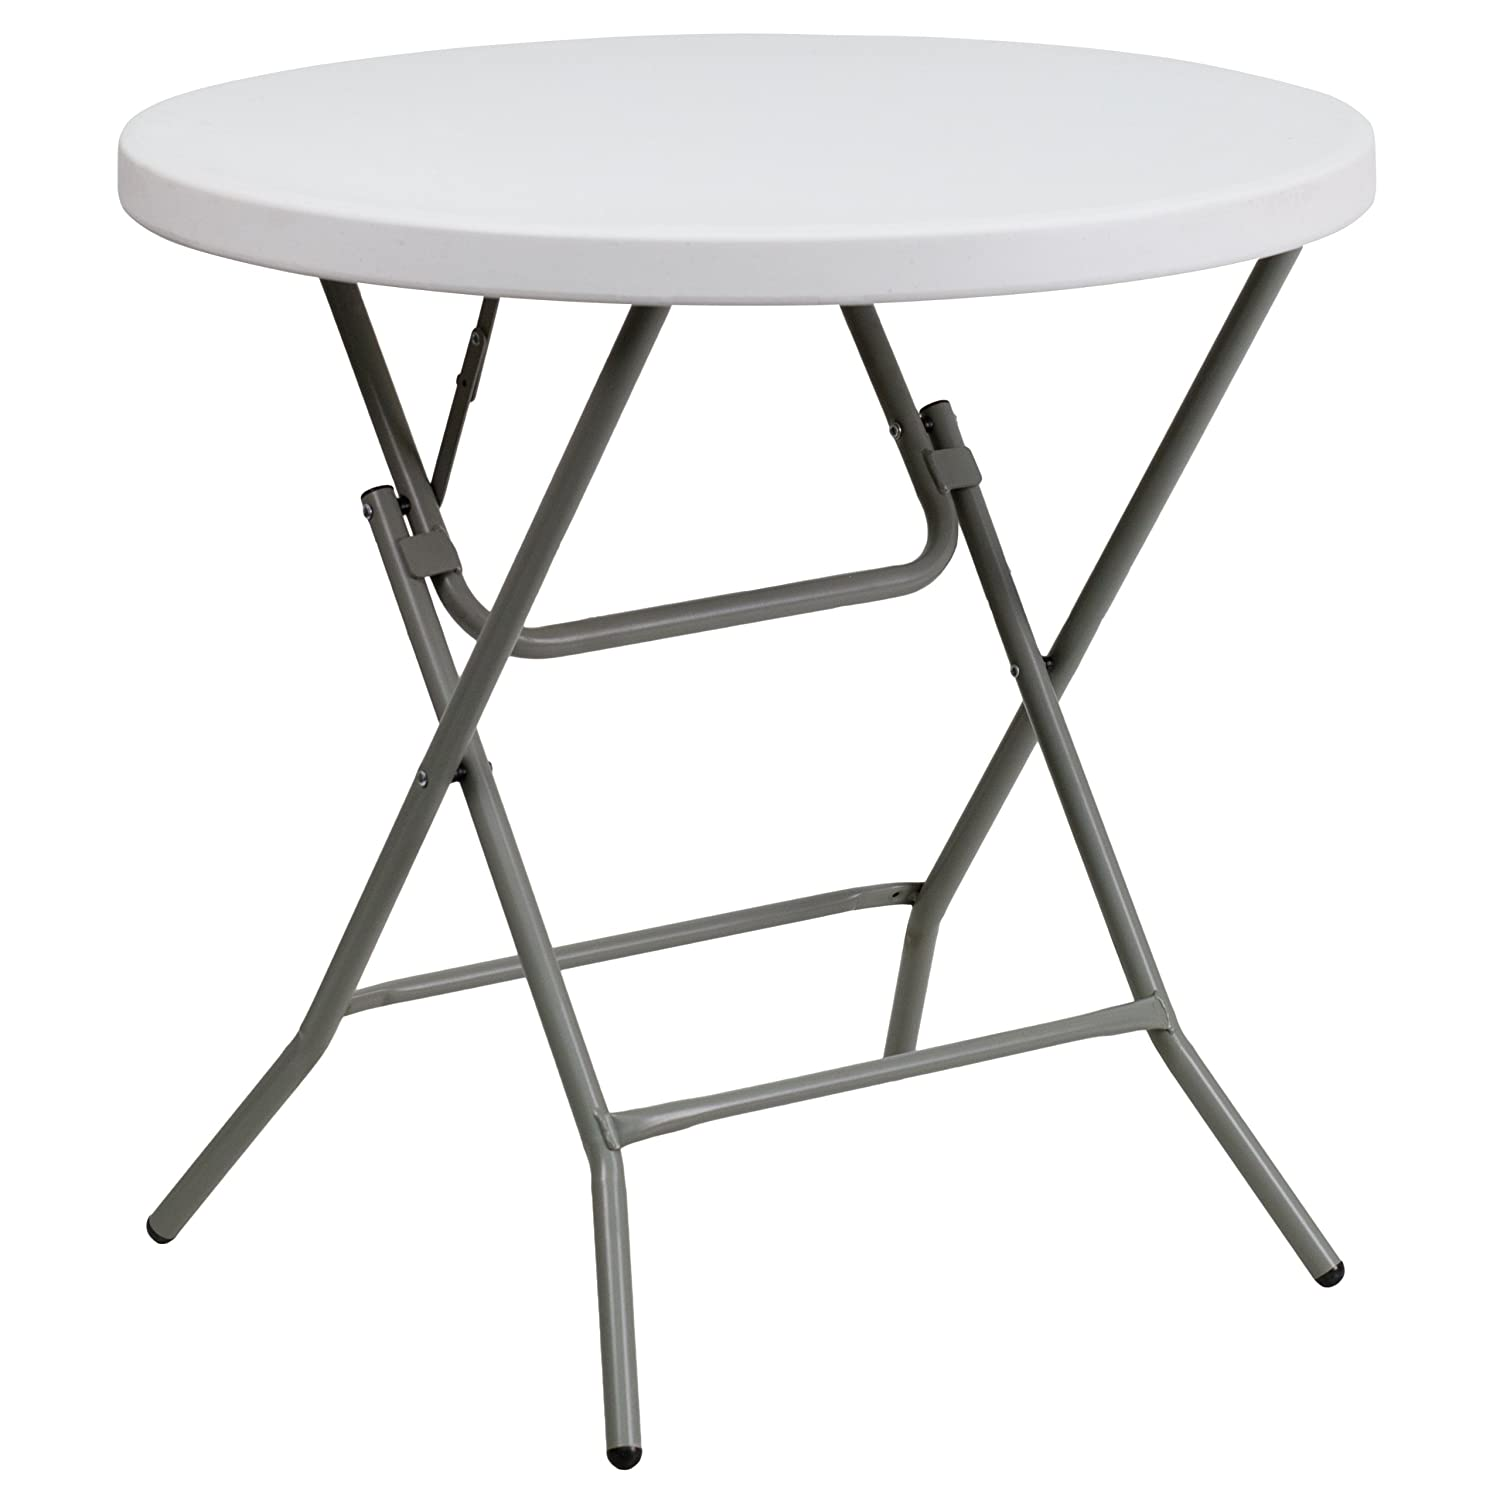 Flash Furniture Granite 32-Inch Round Folding Table, White